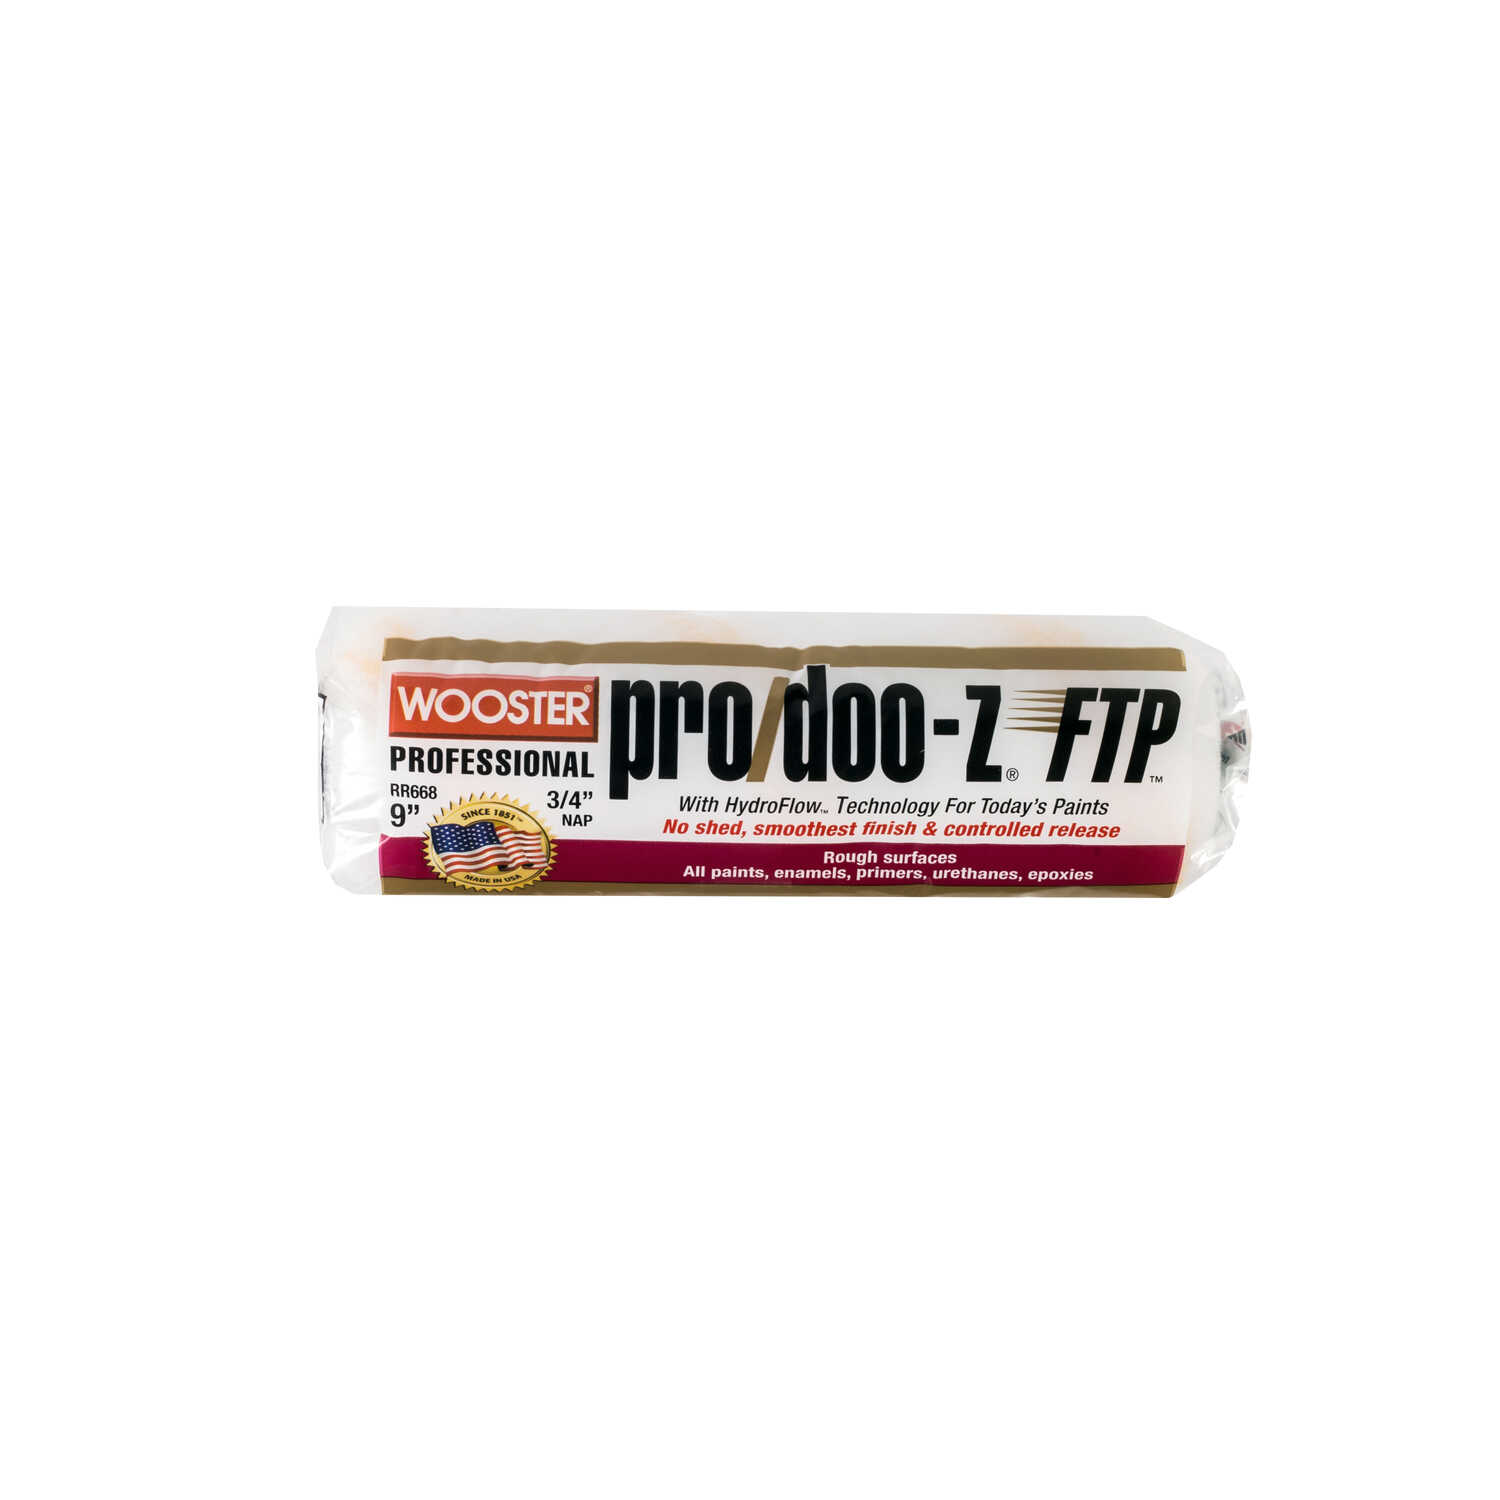 Wooster  Pro/Doo-Z FTP  Synthetic Blend  3/4 in.  x 9 in. W Regular  Paint Roller Cover  1 pk